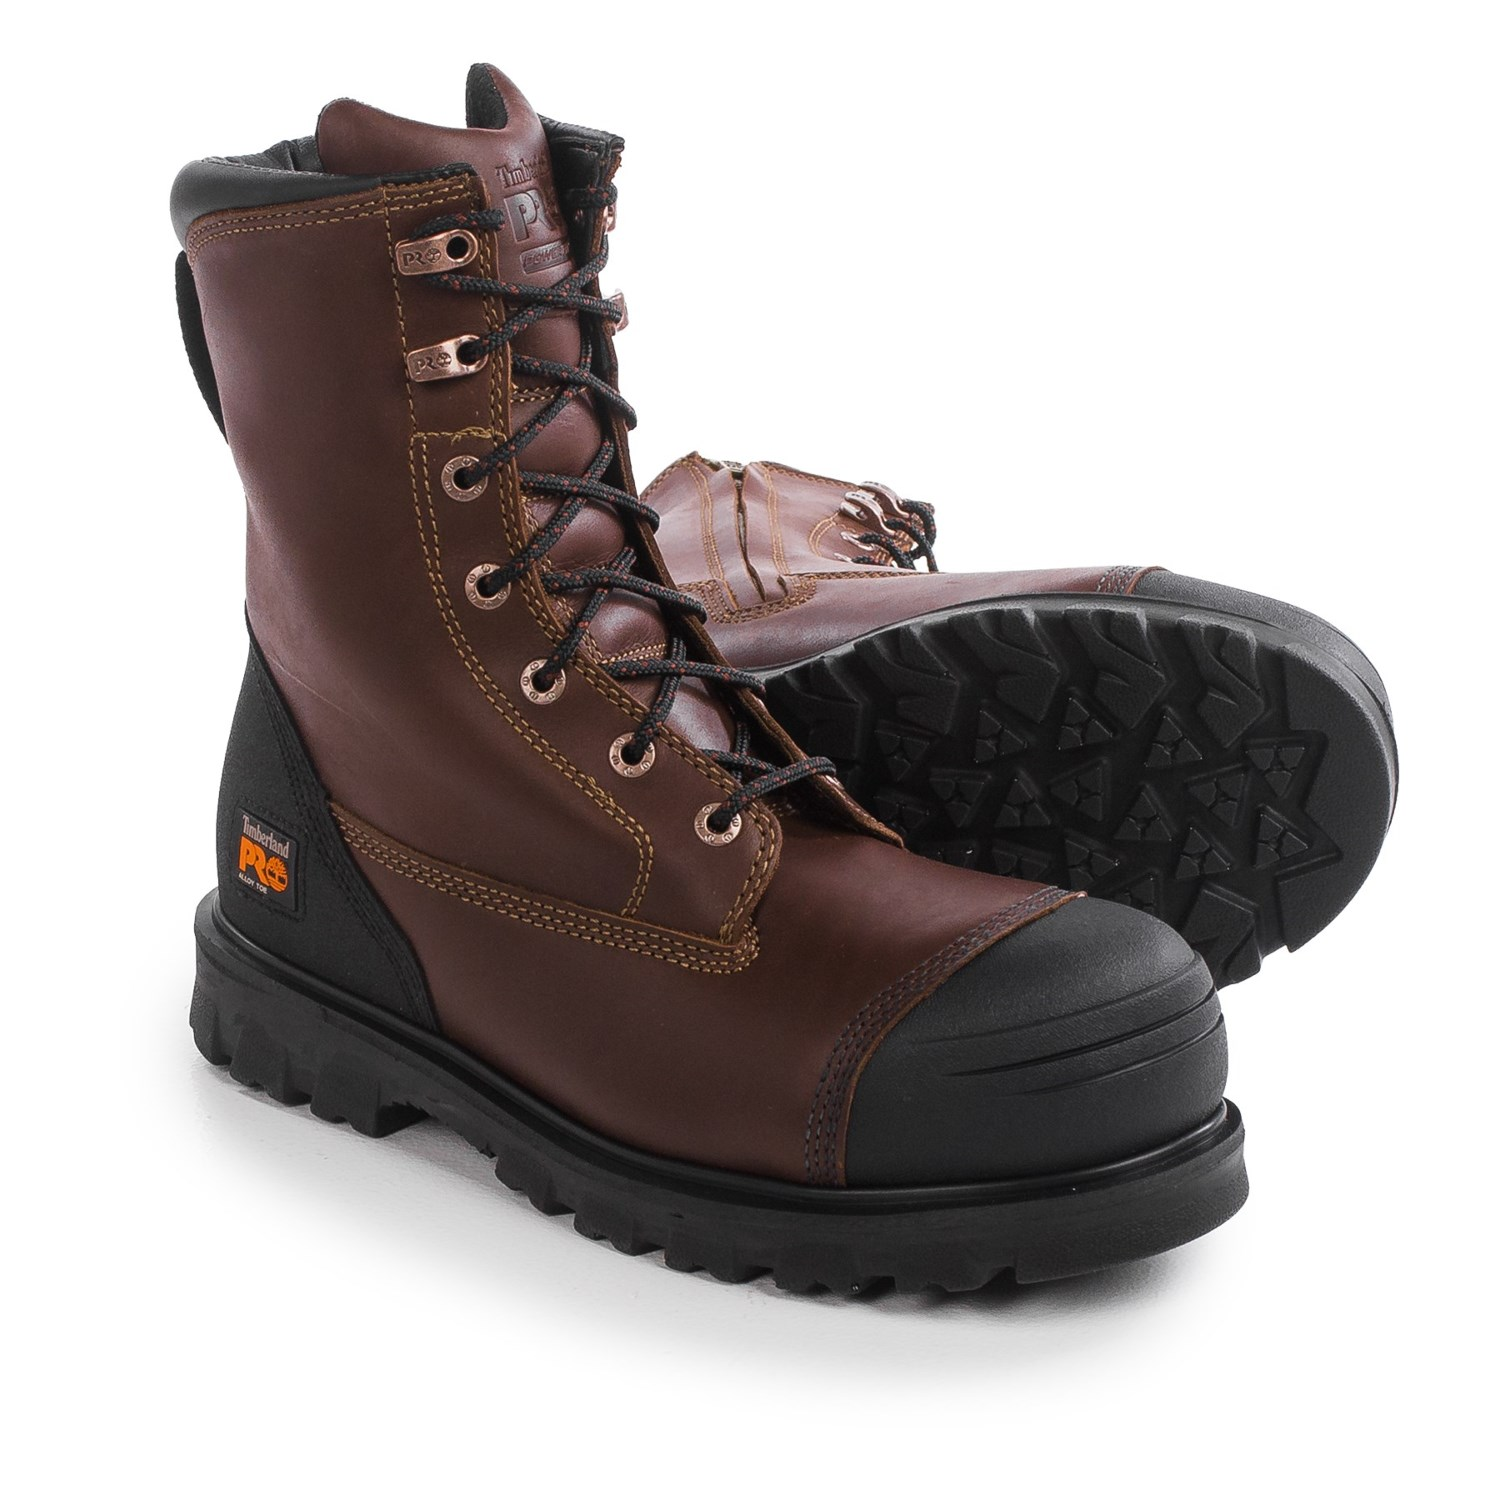 Timberland Pro Caprock Alloy Toe Work Boots For Men